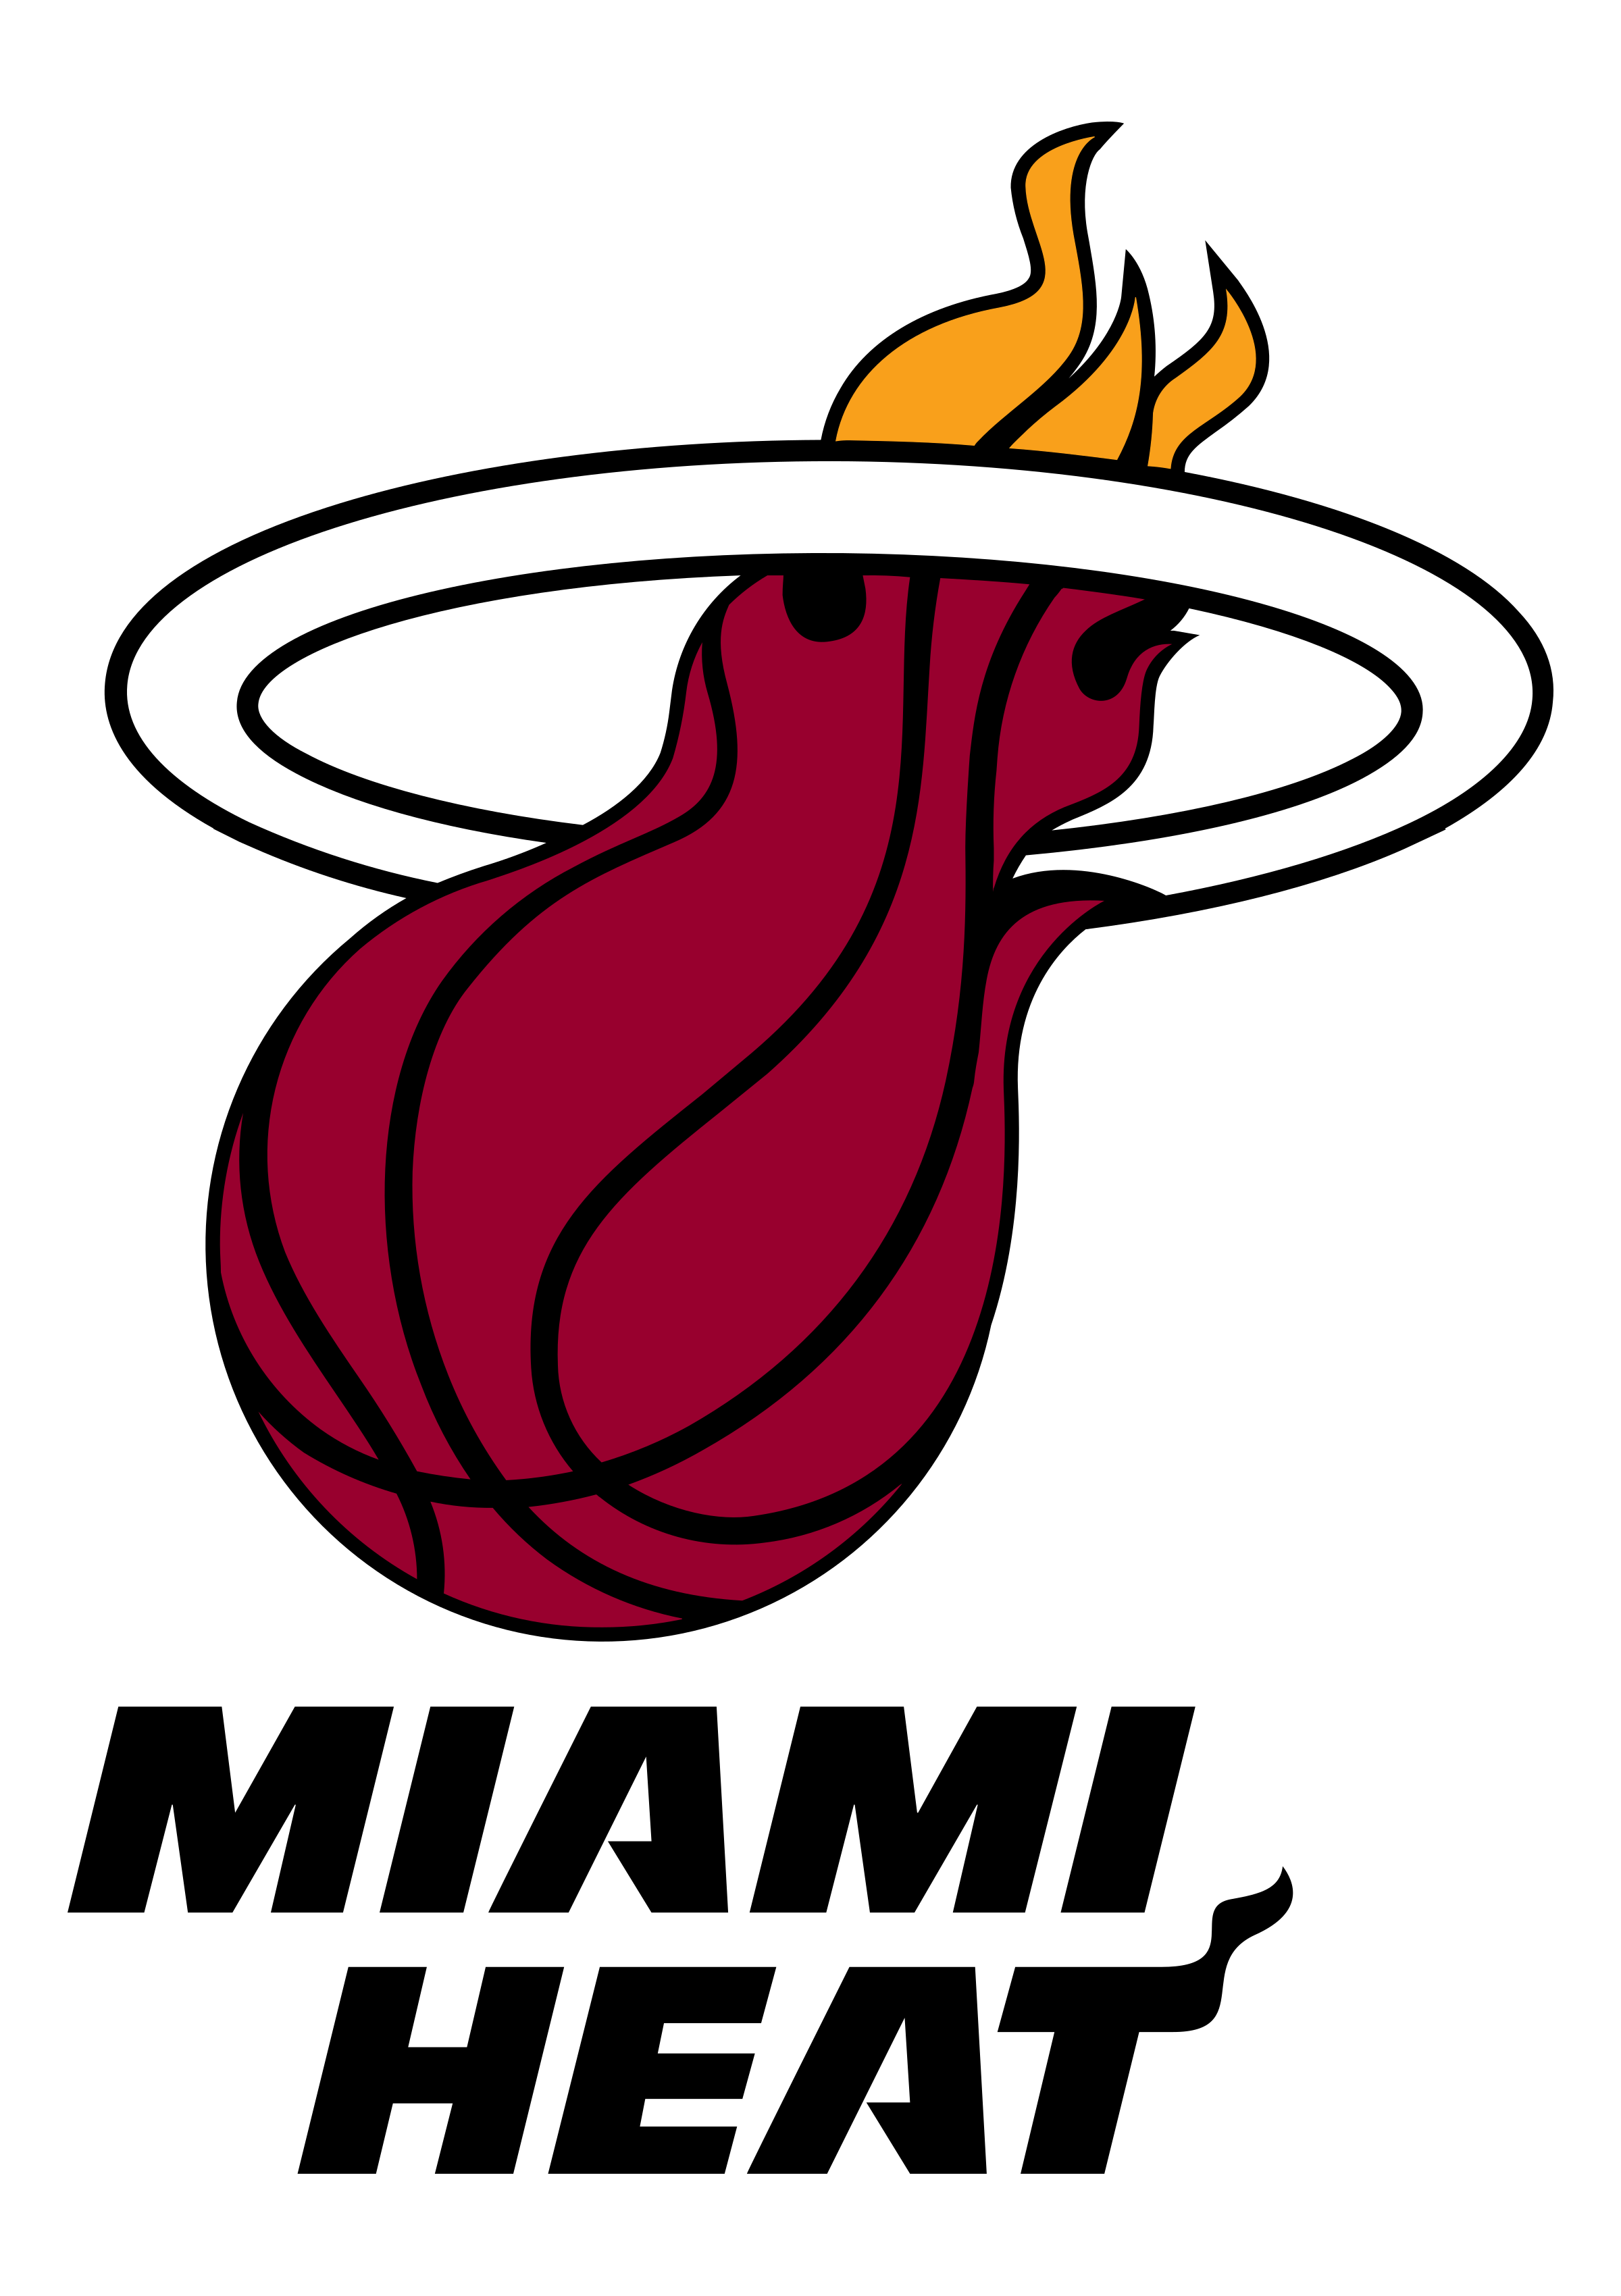 Miami Heat Logo Png Transparent Svg Vector Freebie Supply